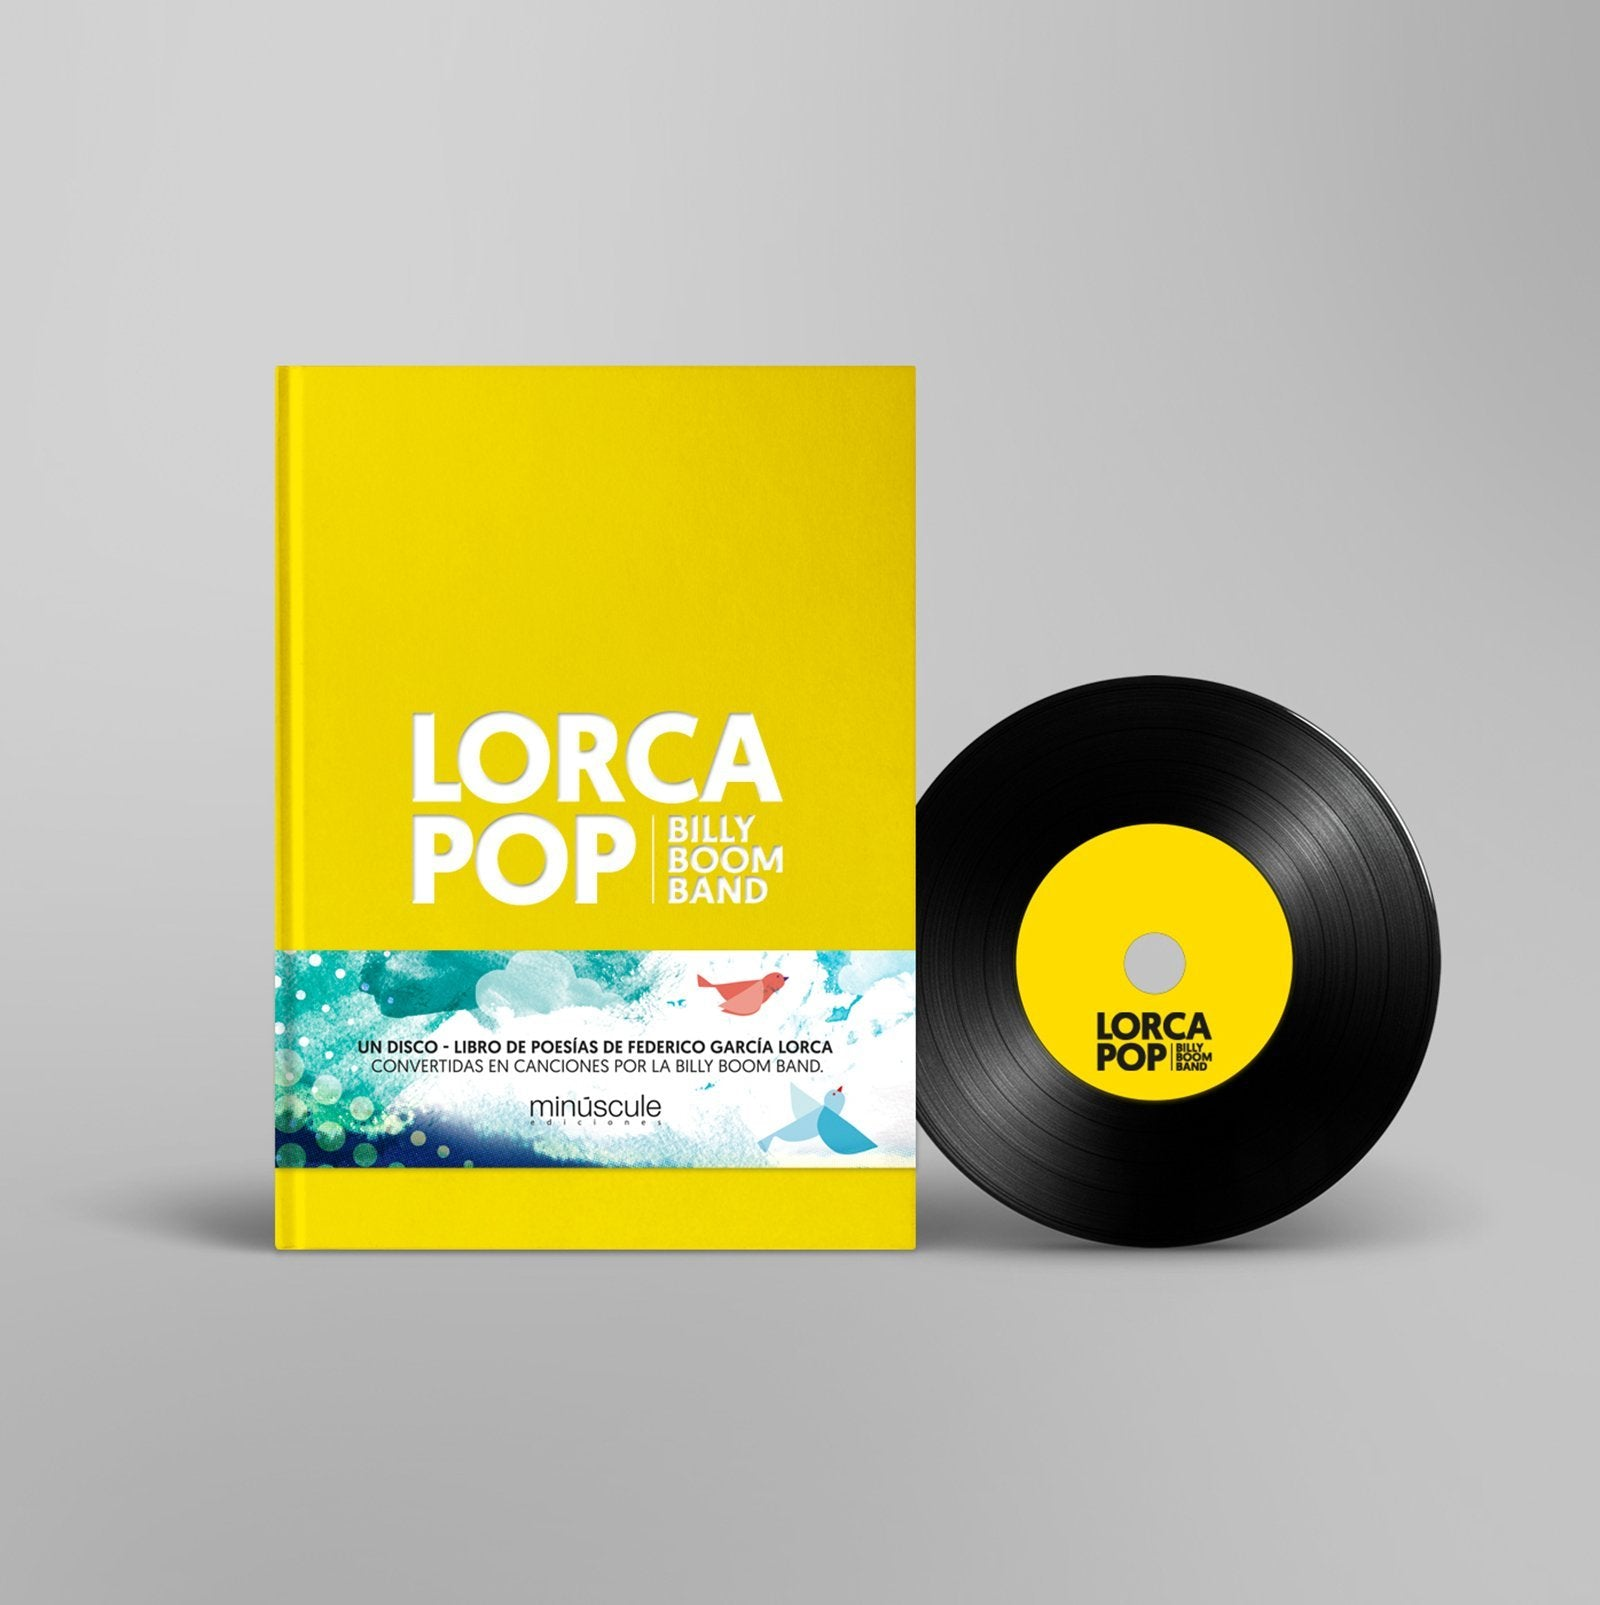 Lorca POP - Libro + CD - The Fandation - Billy Boom Band